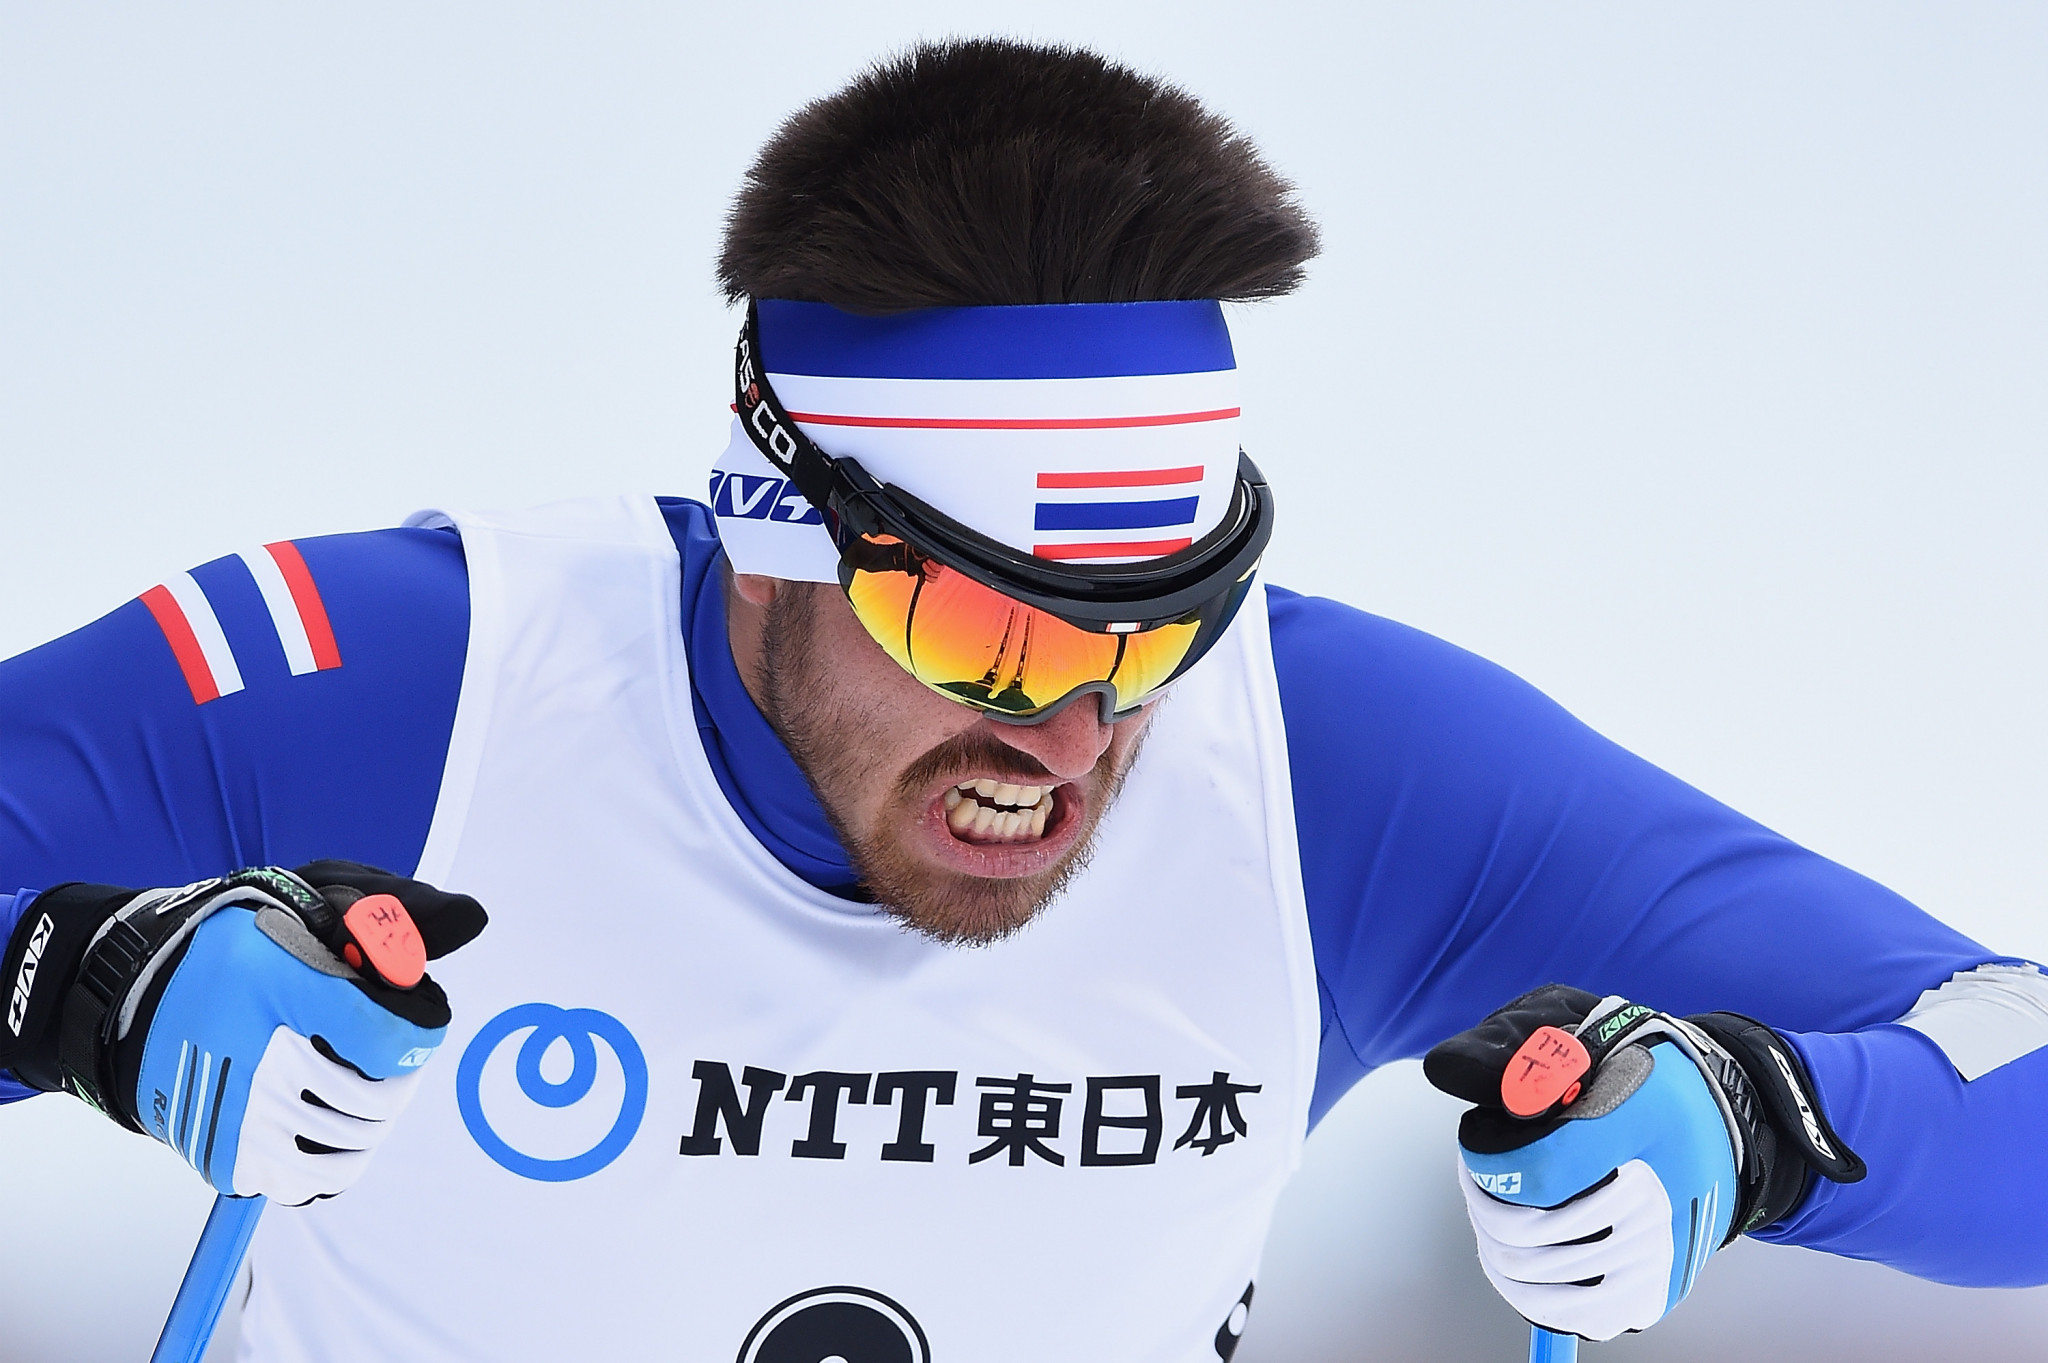 Mark Chanloung's best effort saw him finish second in men's qualifying behind De Marre ©Getty Images